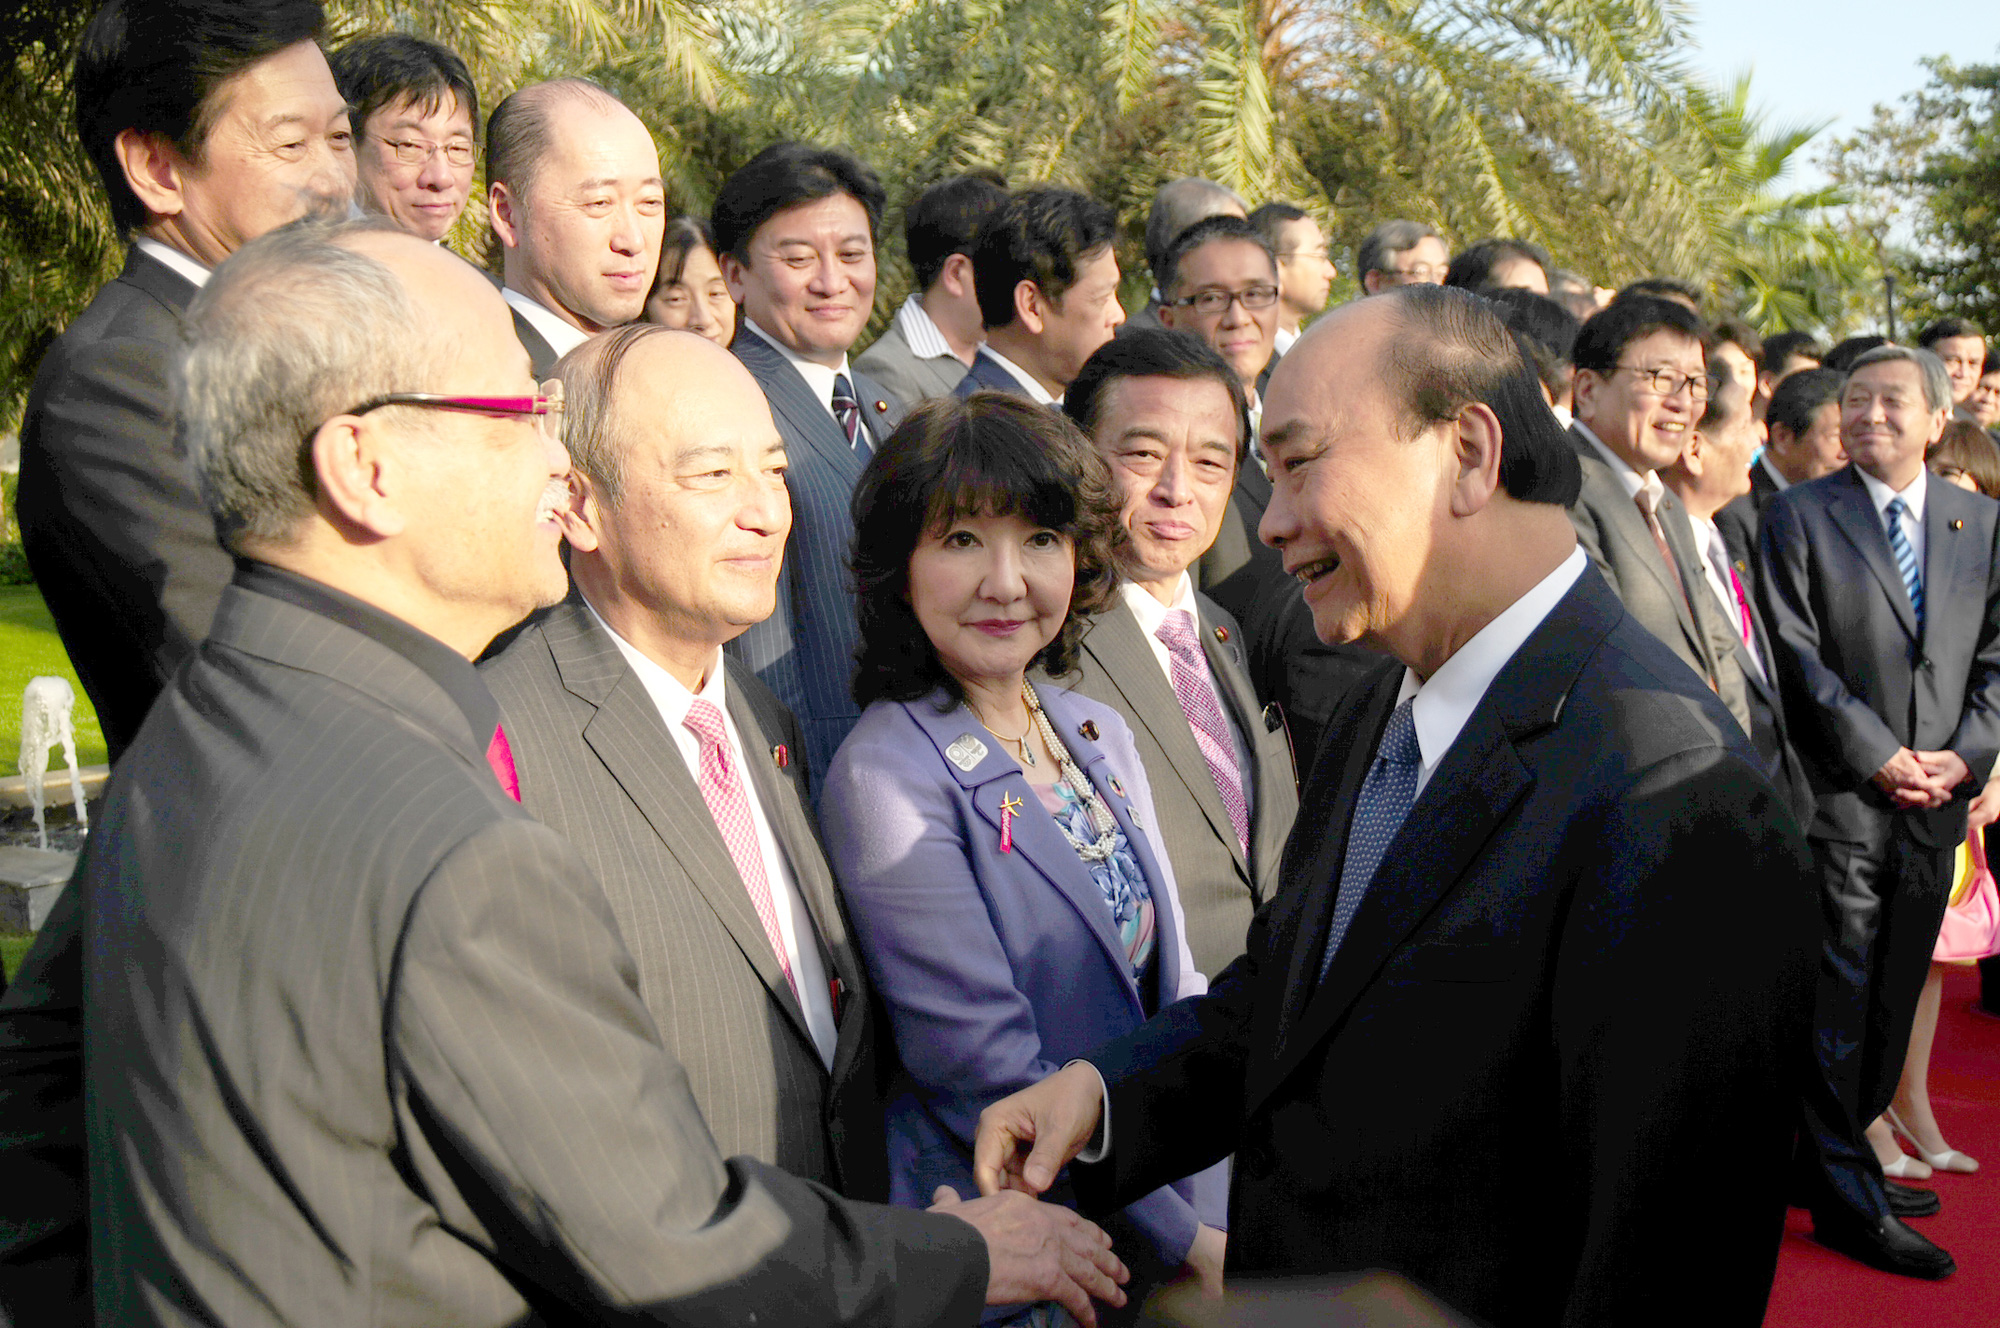 Prime Minister Nguyen Xuan Phuc shakes hands with Japanese delegates in Hoi An City, located in the central province of Quang Nam, on January 12, 2020. Photo: B.D / Tuoi Tre